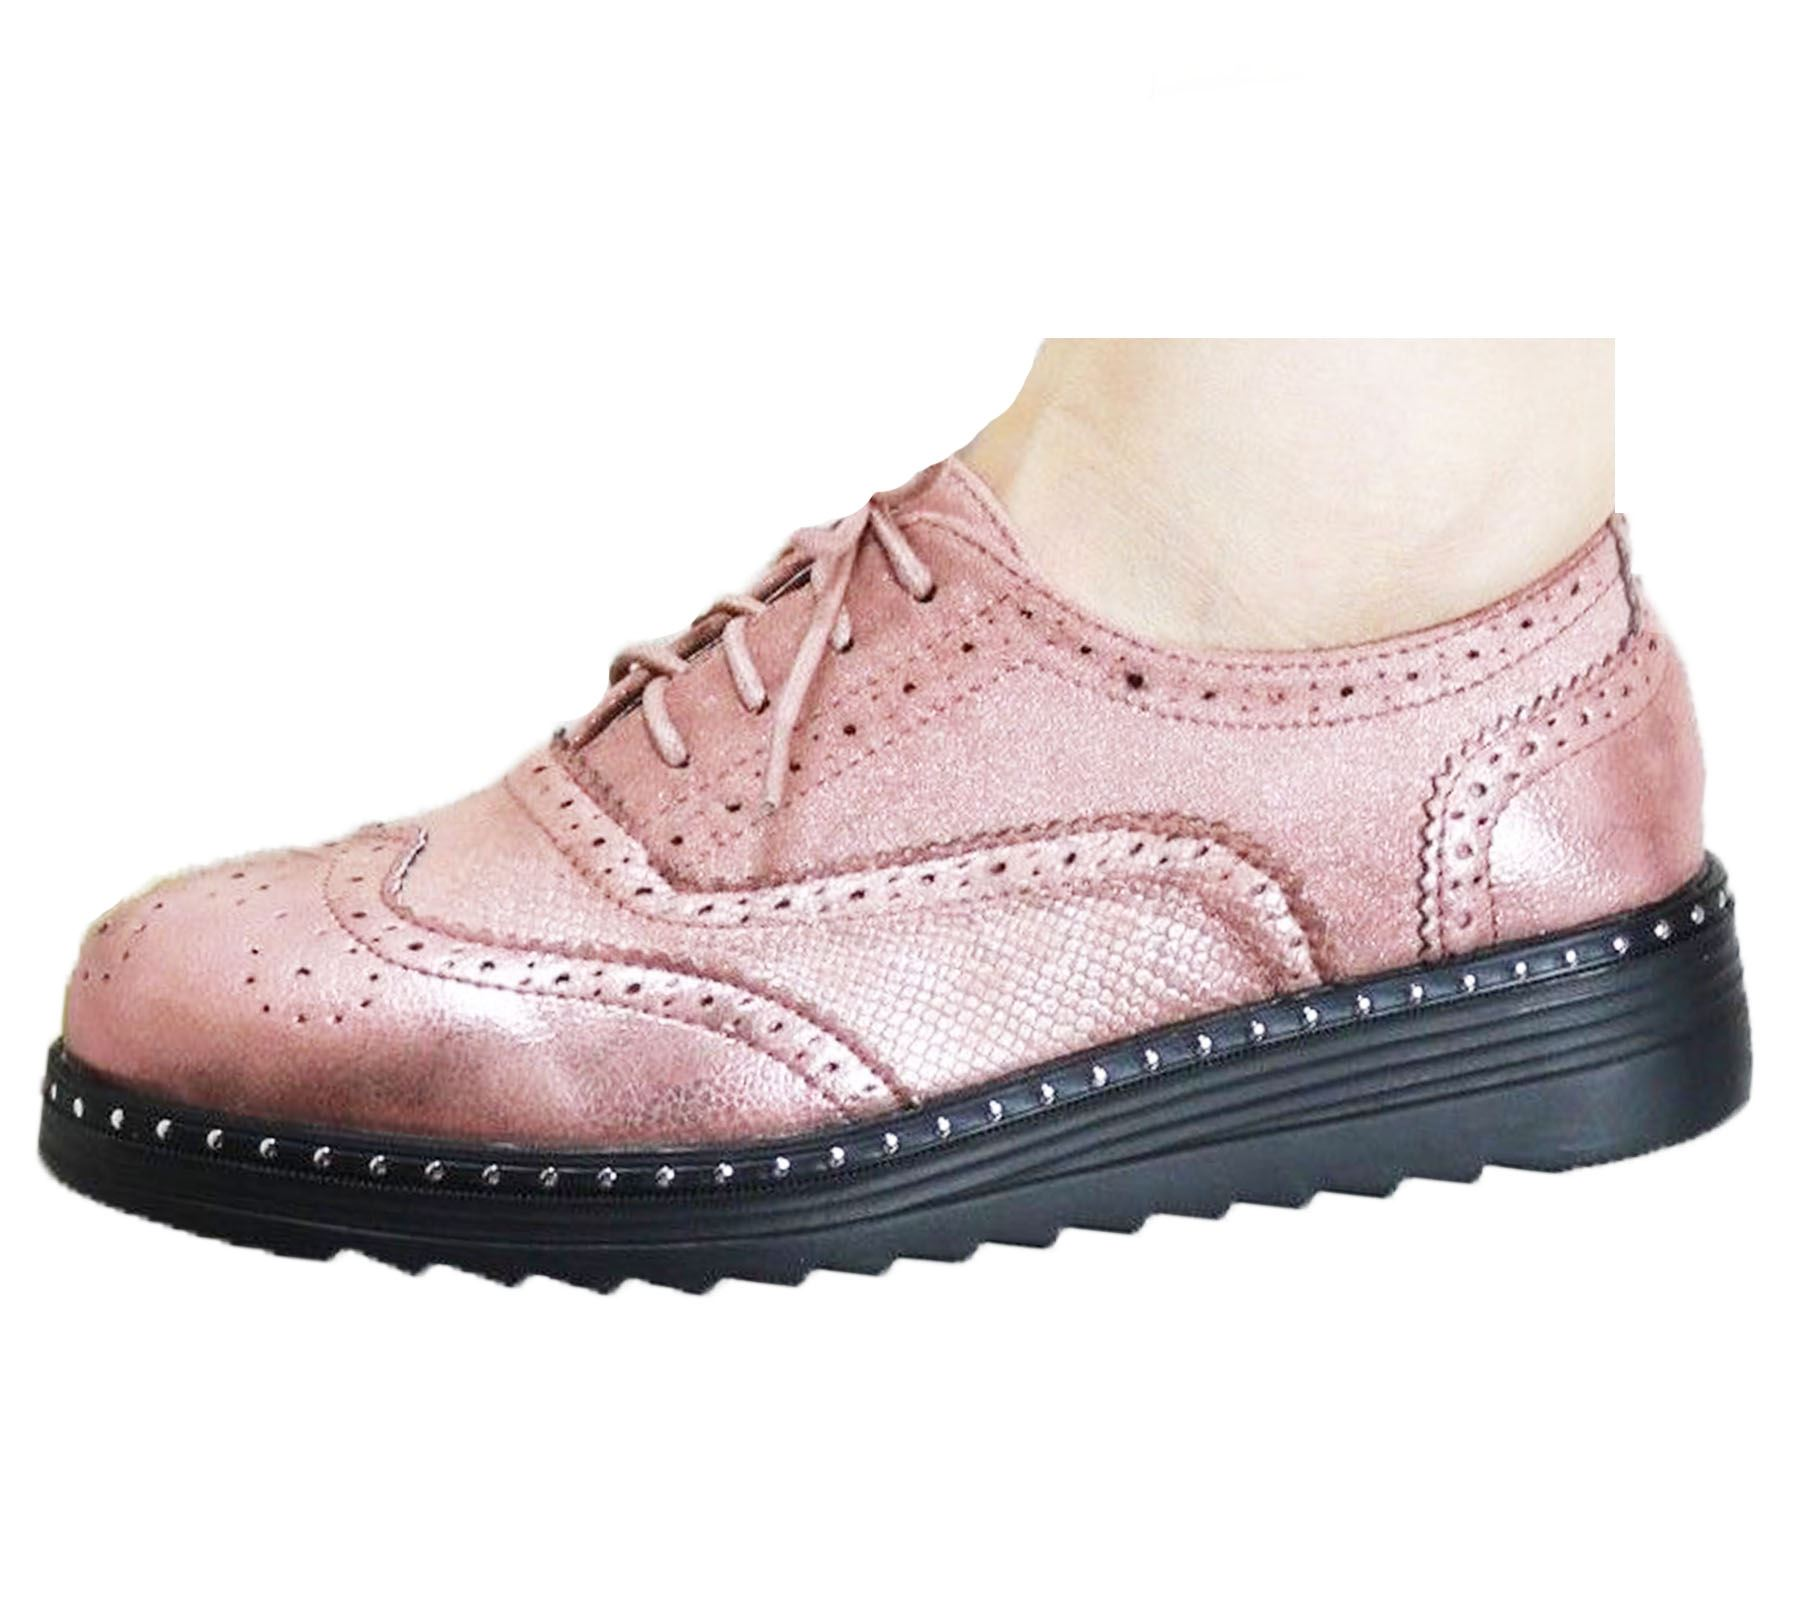 Ladies-Brogue-Lace-Up-Shoes-Womens-Oxford-Smart-Office-Loafers-Shoes miniatura 27